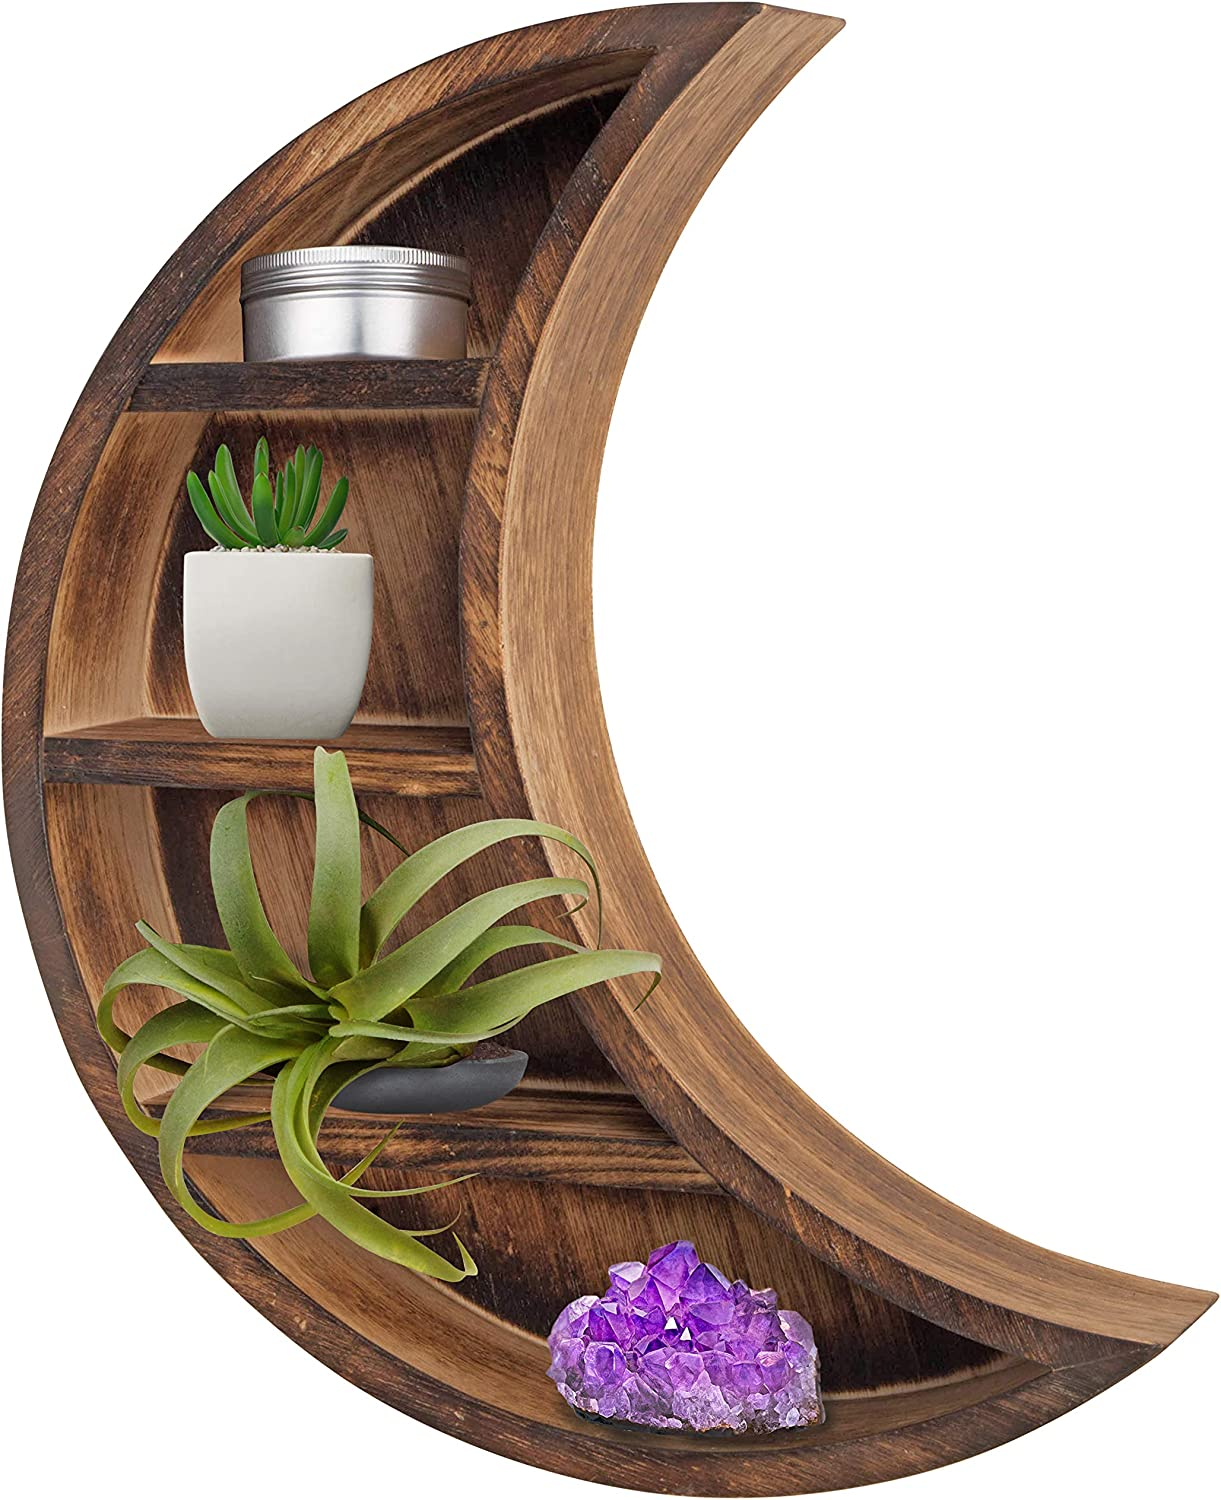 branchish Wood Moon Shelf - Aesthetic Wooden Moon Wall Decor for Bedroom, Home, Bathroom, Kitchen, Cabin | Celestial Phases Mounted Hanging Art Shelves Decorations for Unique Room Display